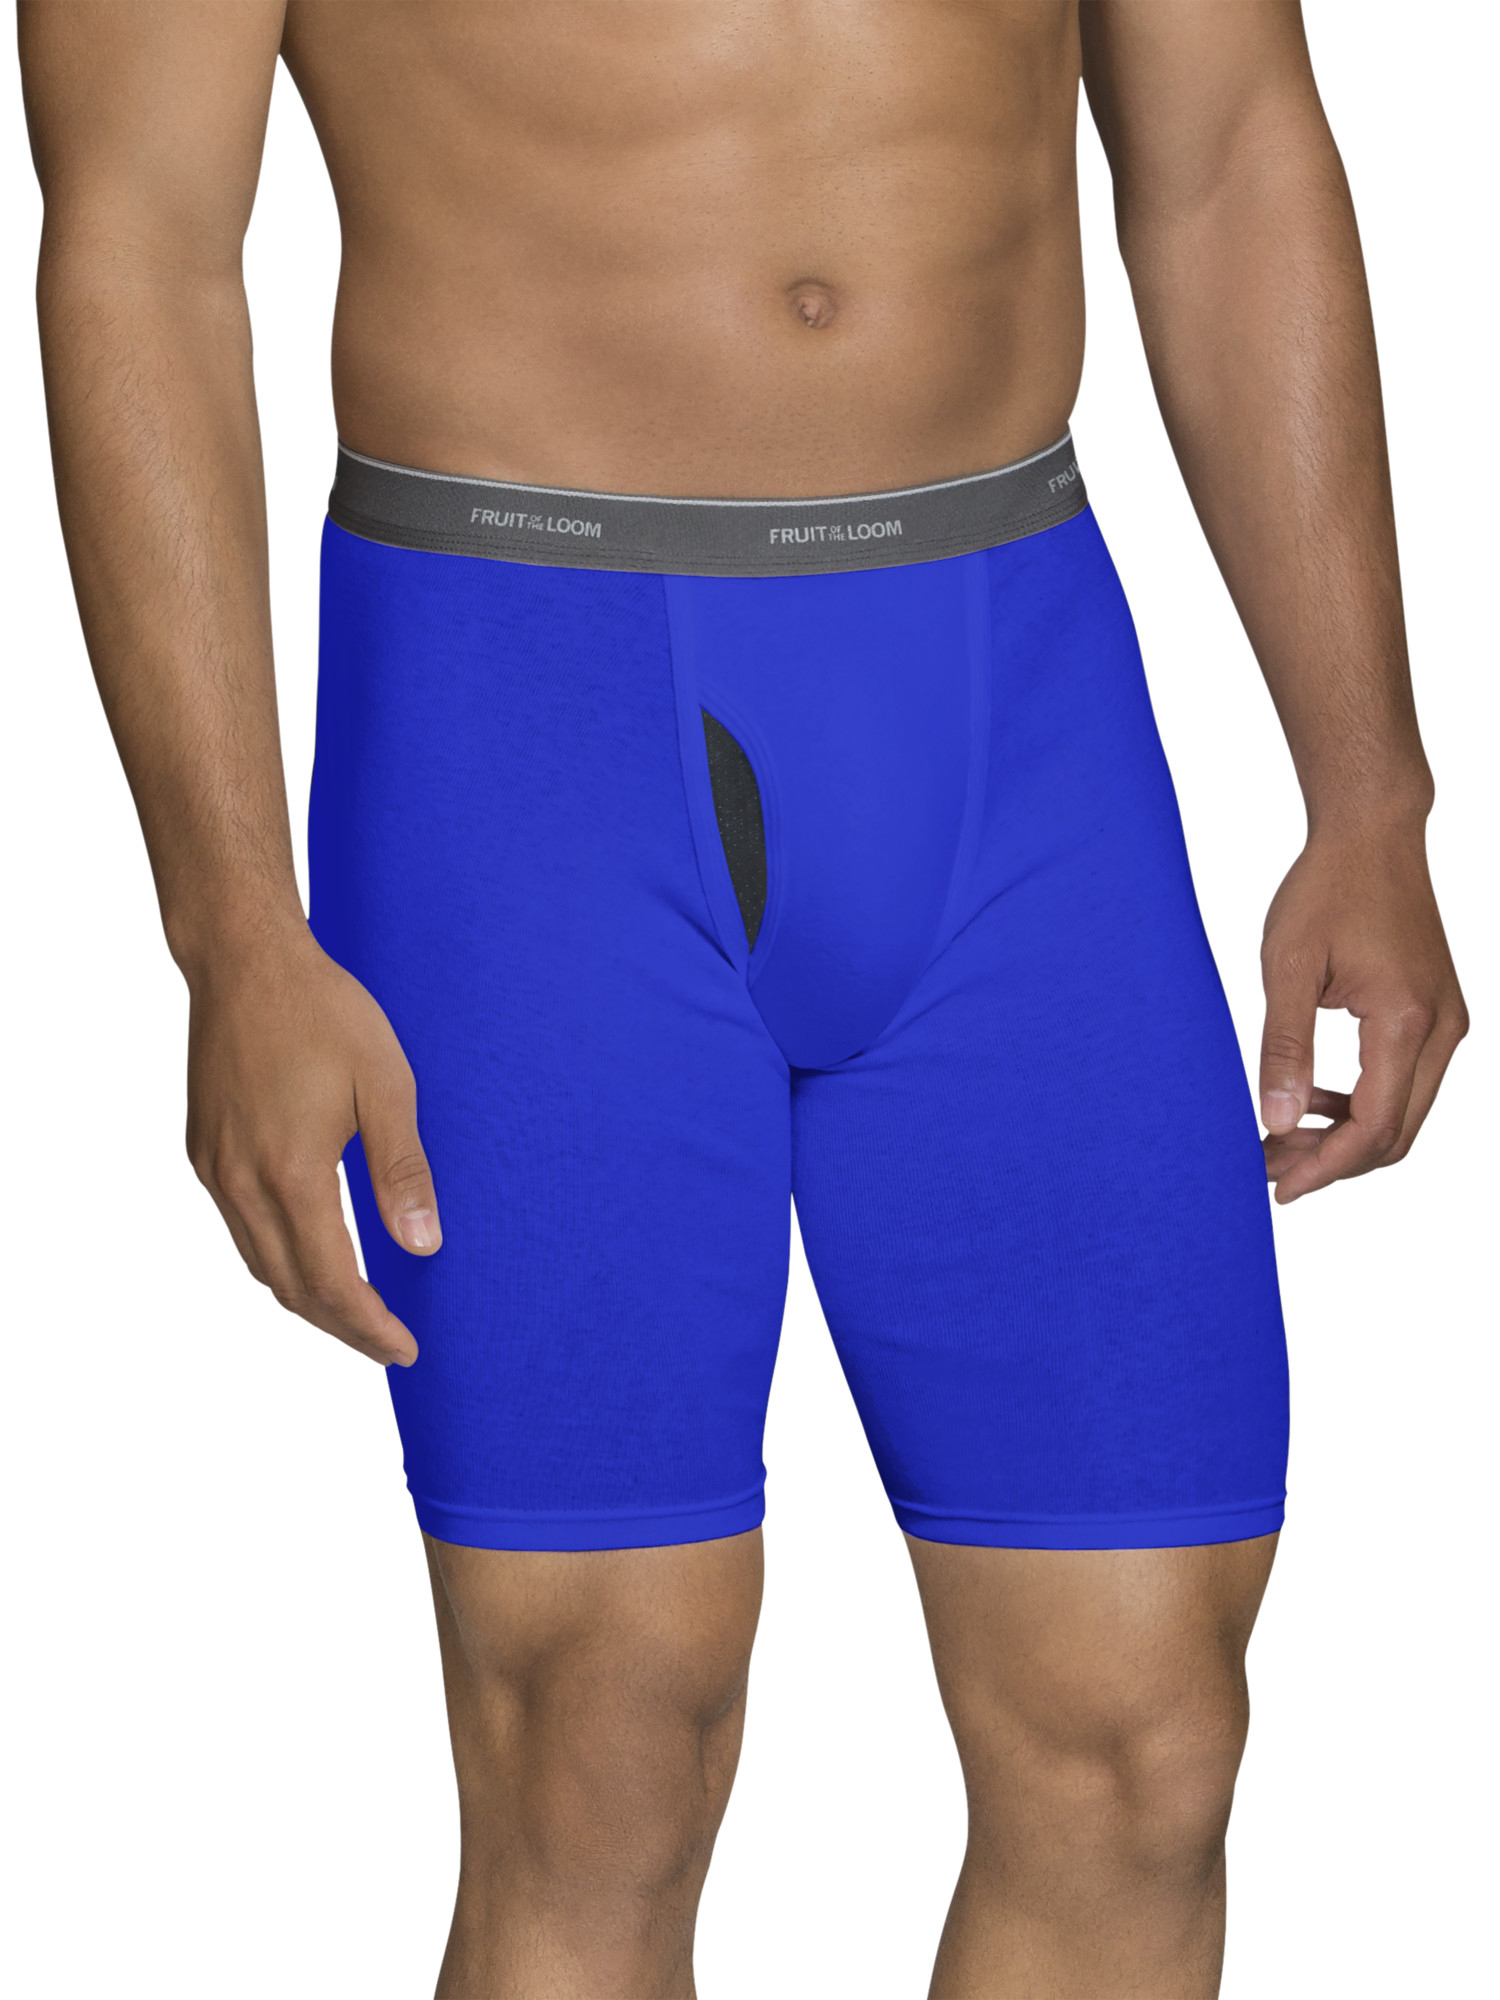 Big Men's CoolZone Fly Dual Defense Assorted Long Leg Boxer Briefs, Extended Sizes, 4 Pack